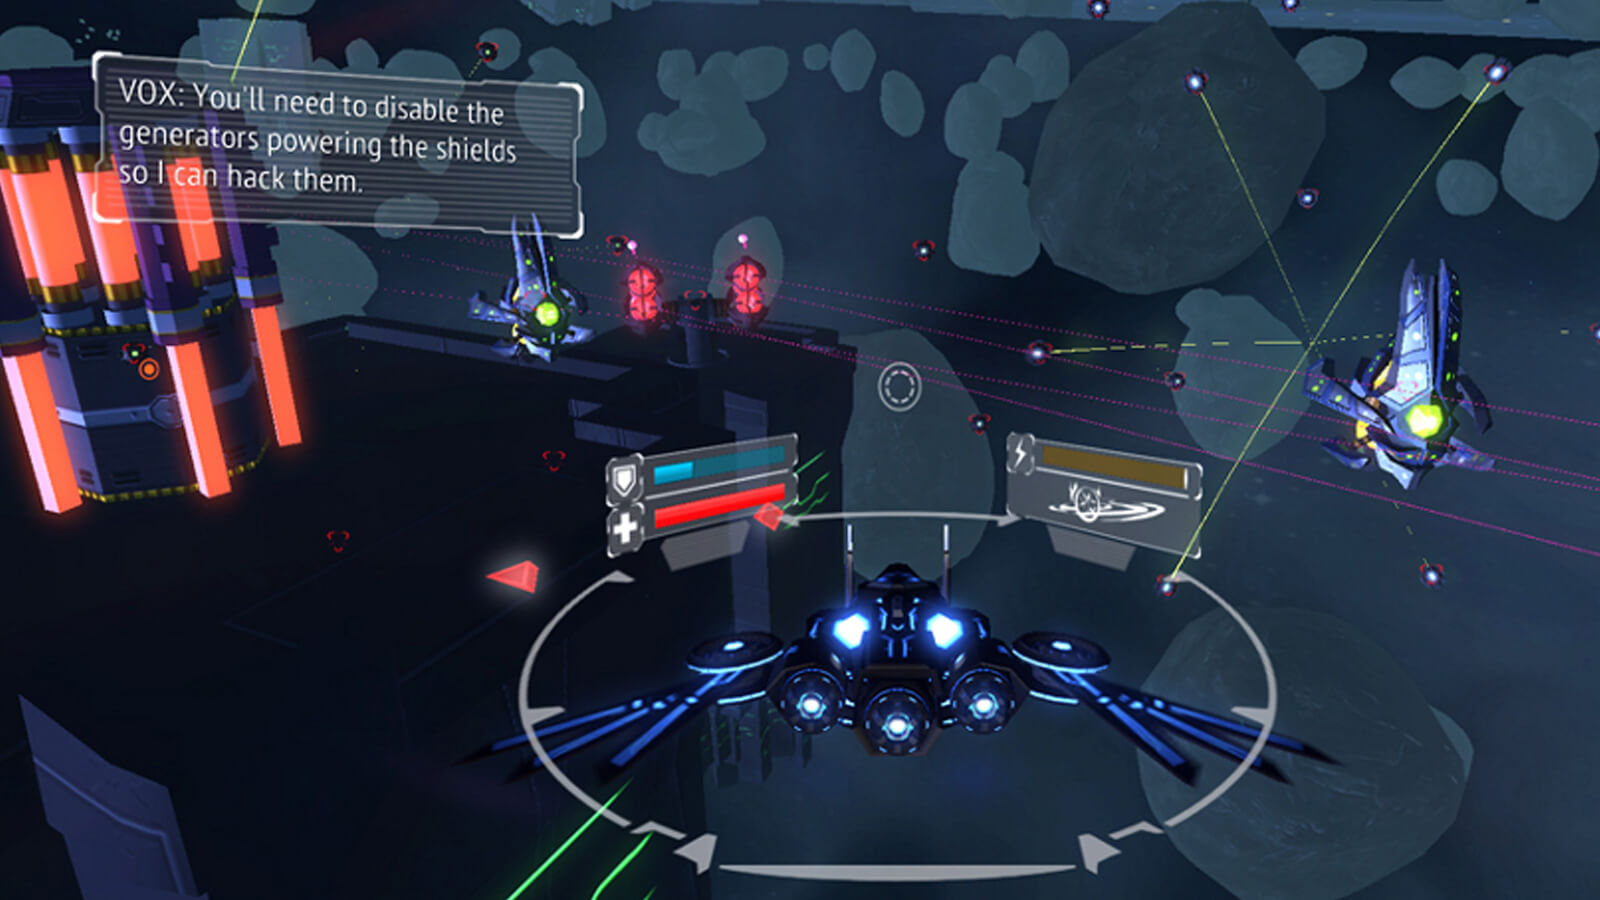 View of the player's blue and black space ship from behind with two blue enemy ships approaching